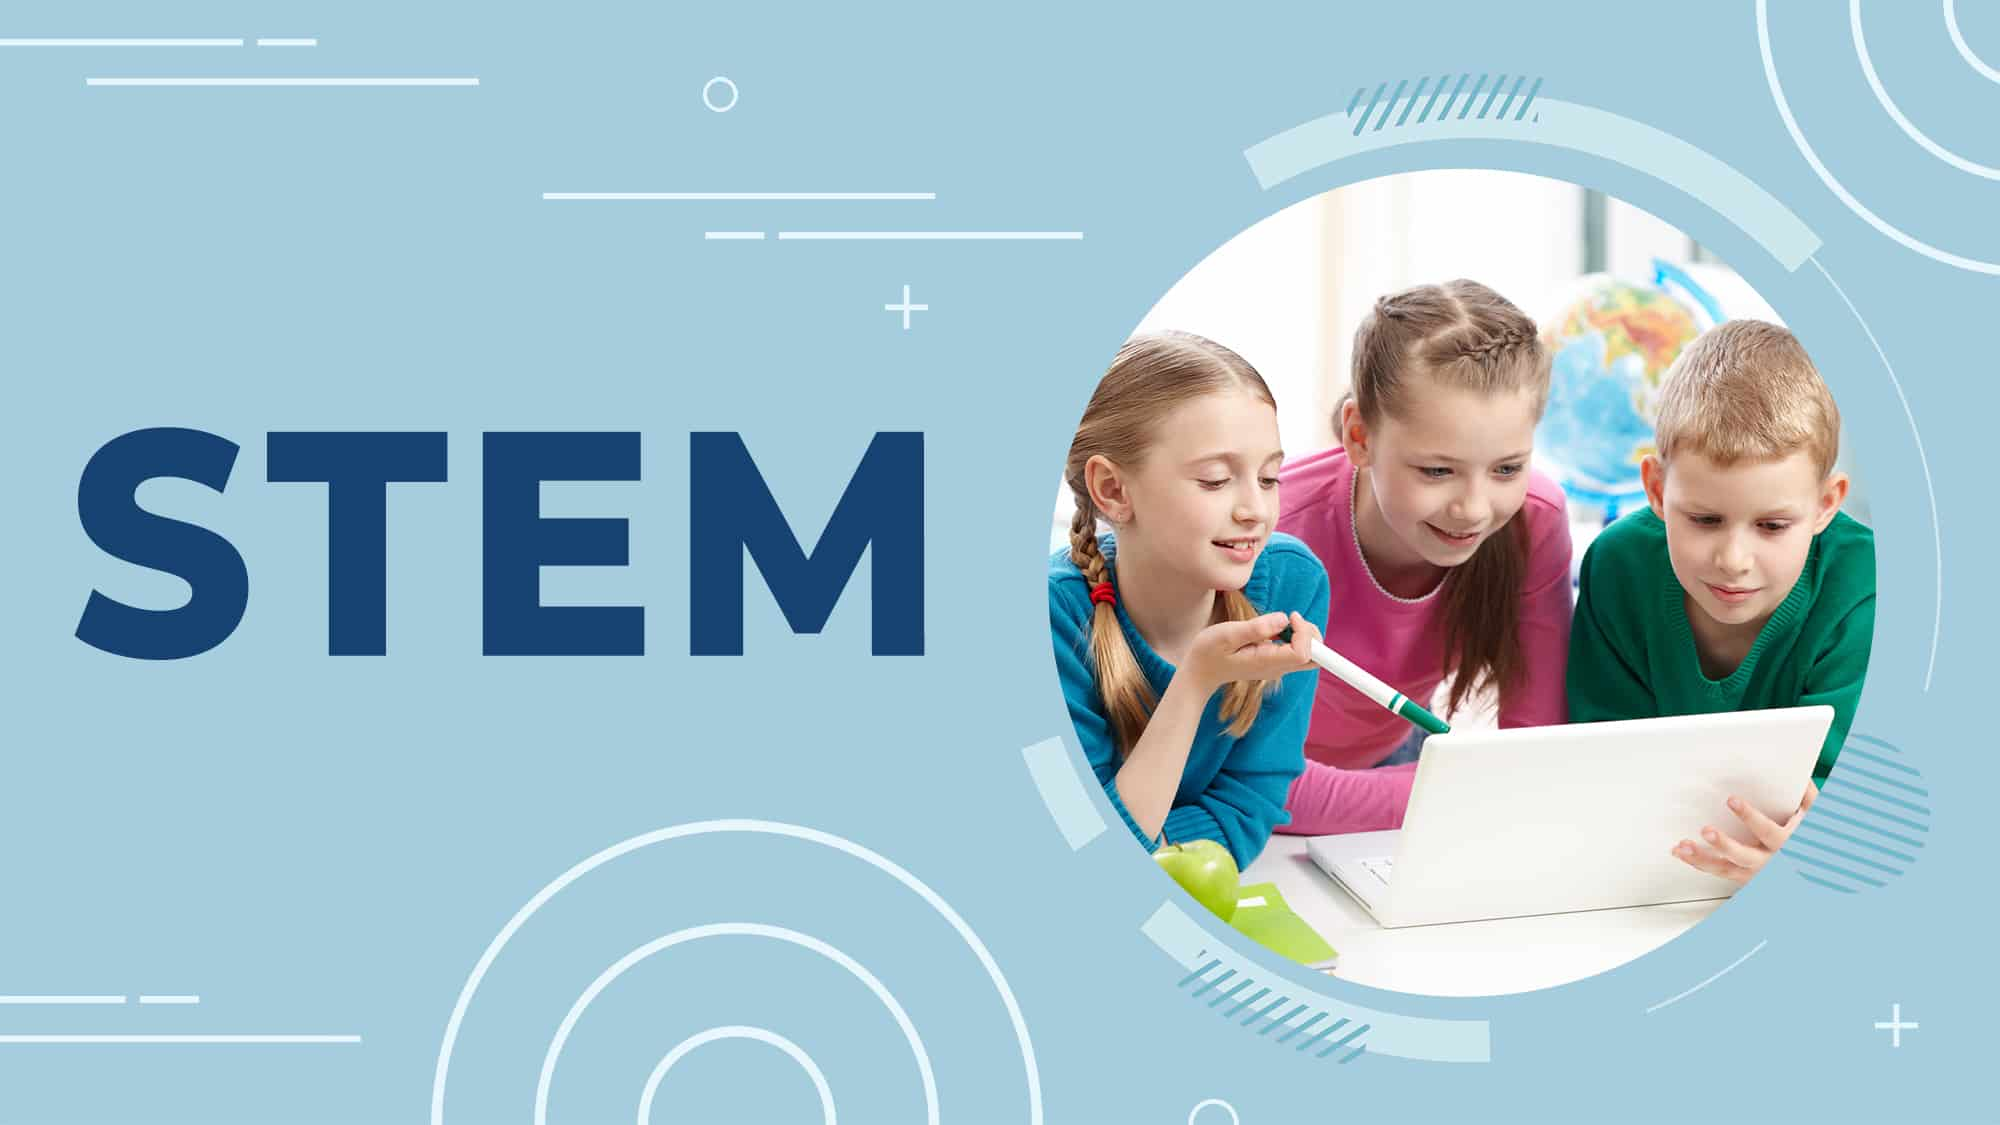 Emeritus expands into K12 through acquisition of iD Tech